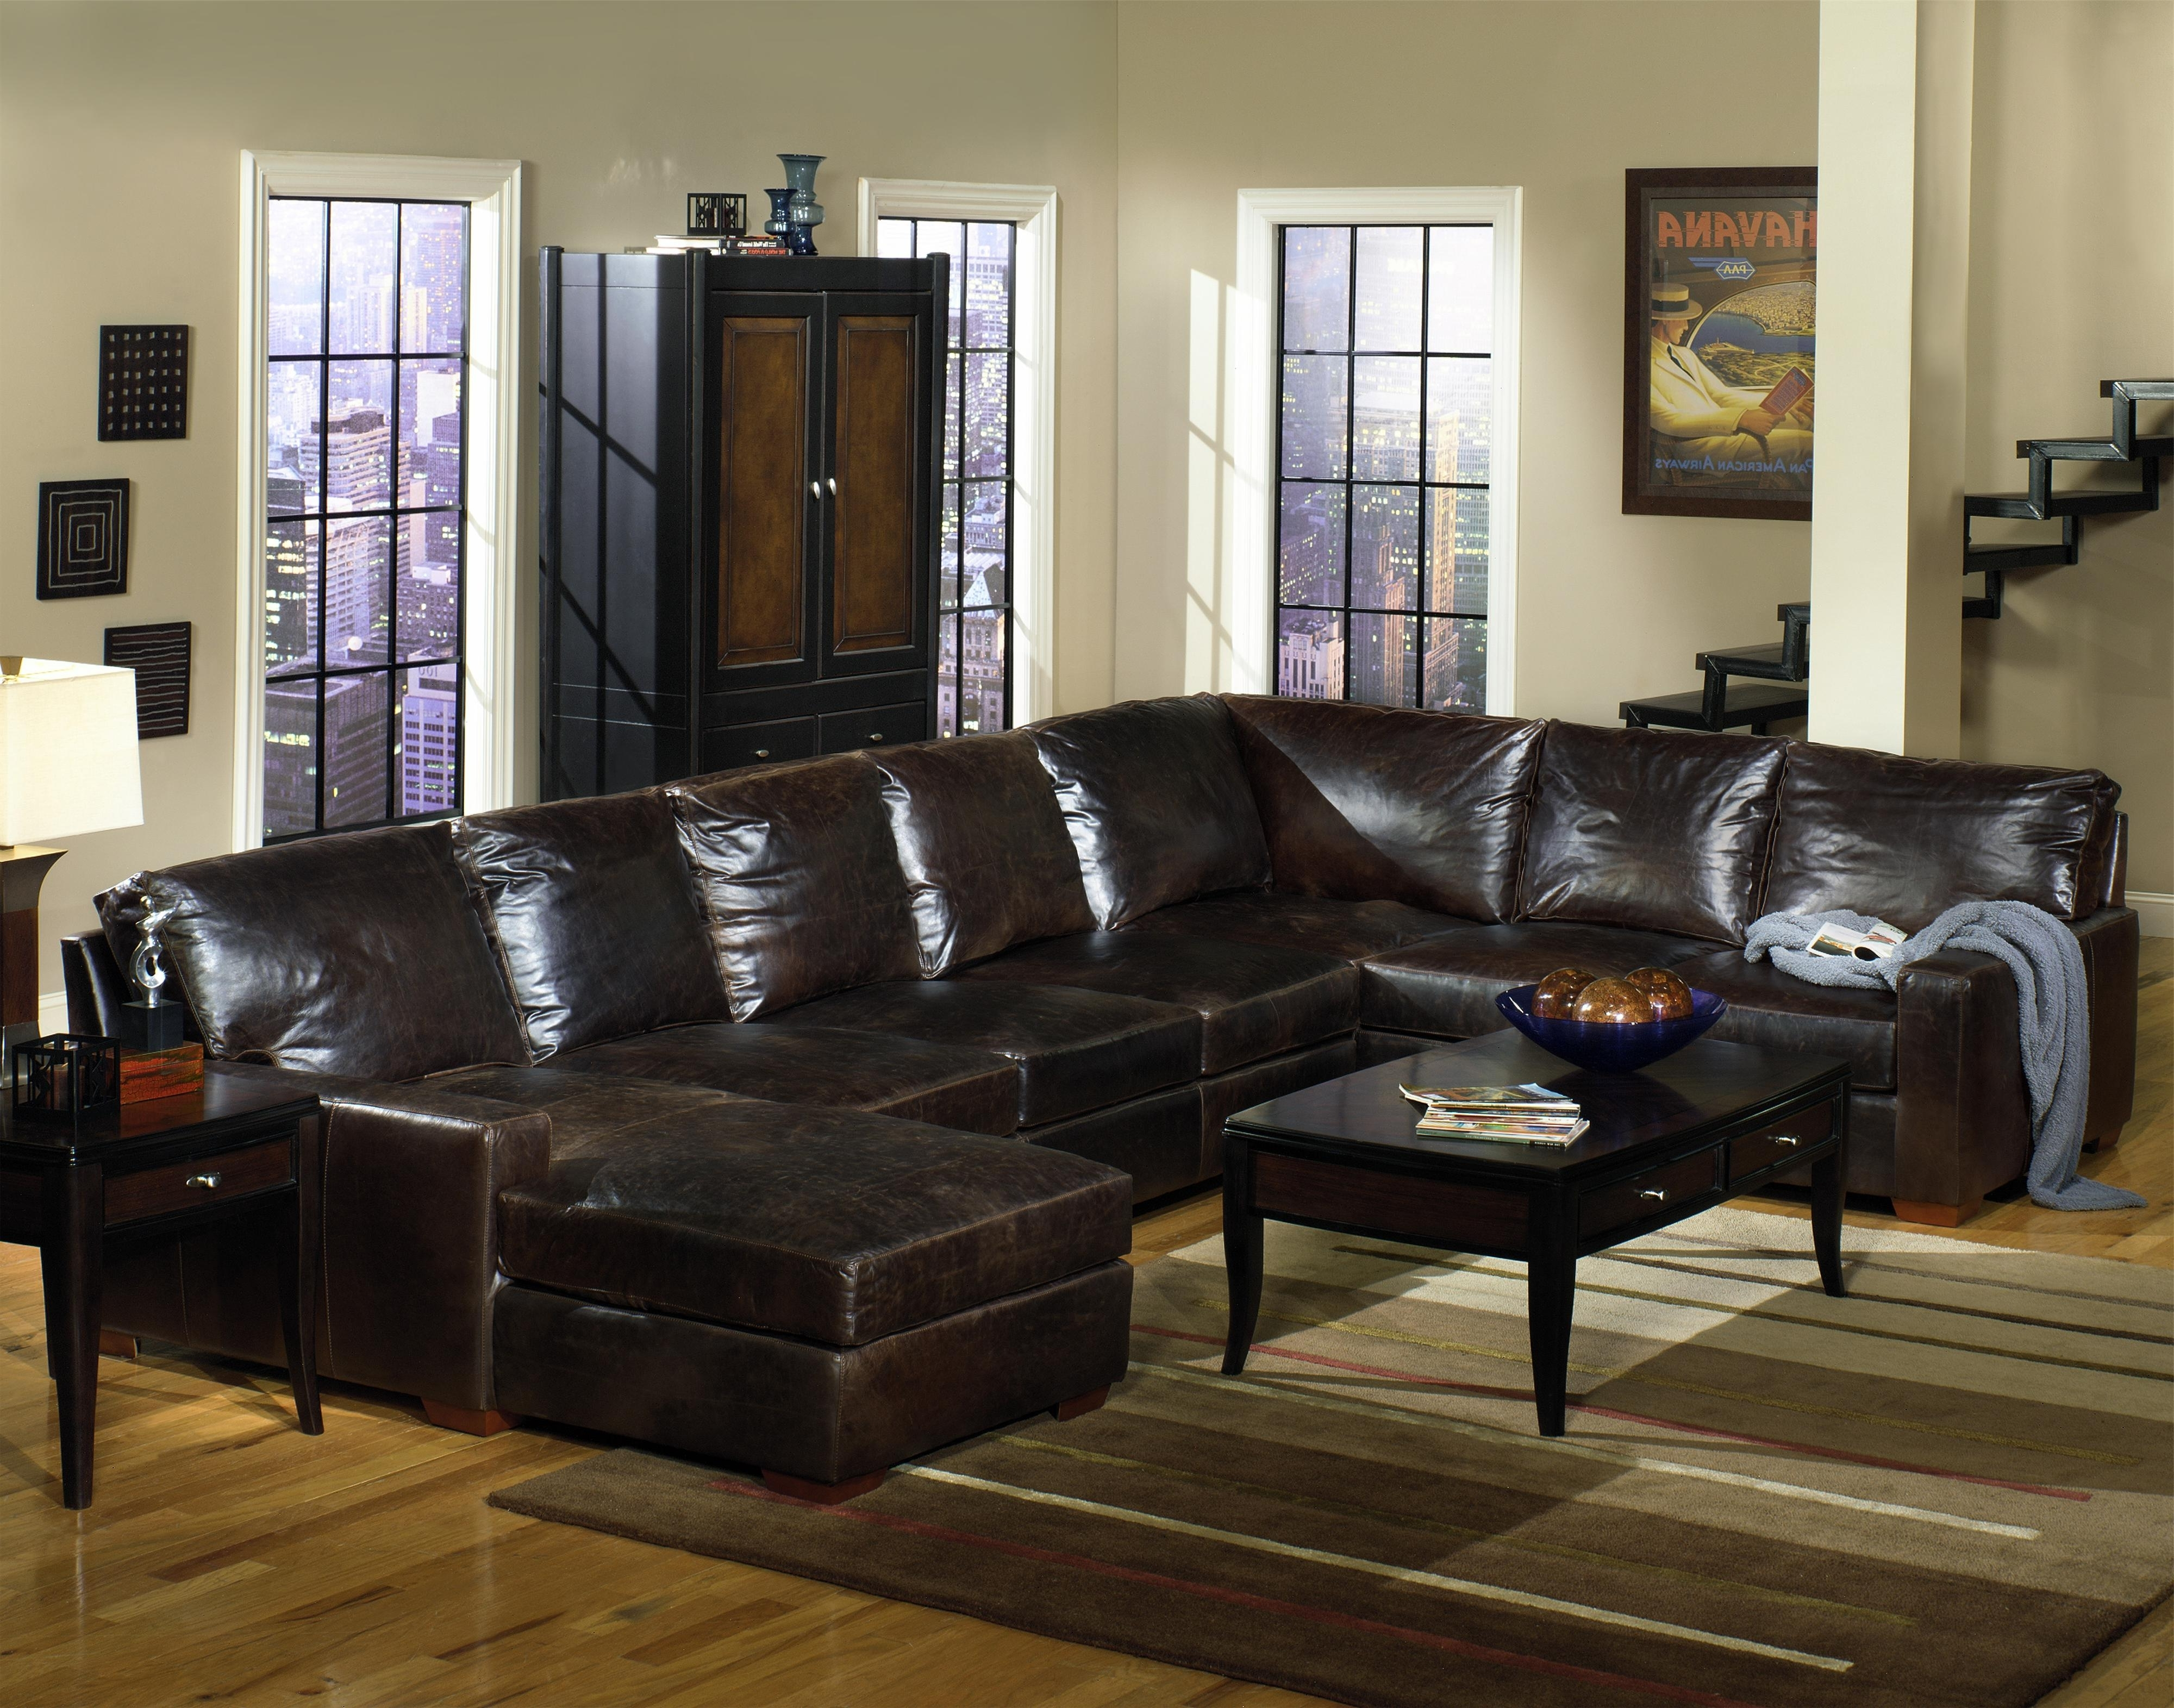 Brown Leather Sectionals With Chaise Within Famous Usa Premium Leather 9935 Track Arm Sofa Chaise Sectional (View 7 of 15)